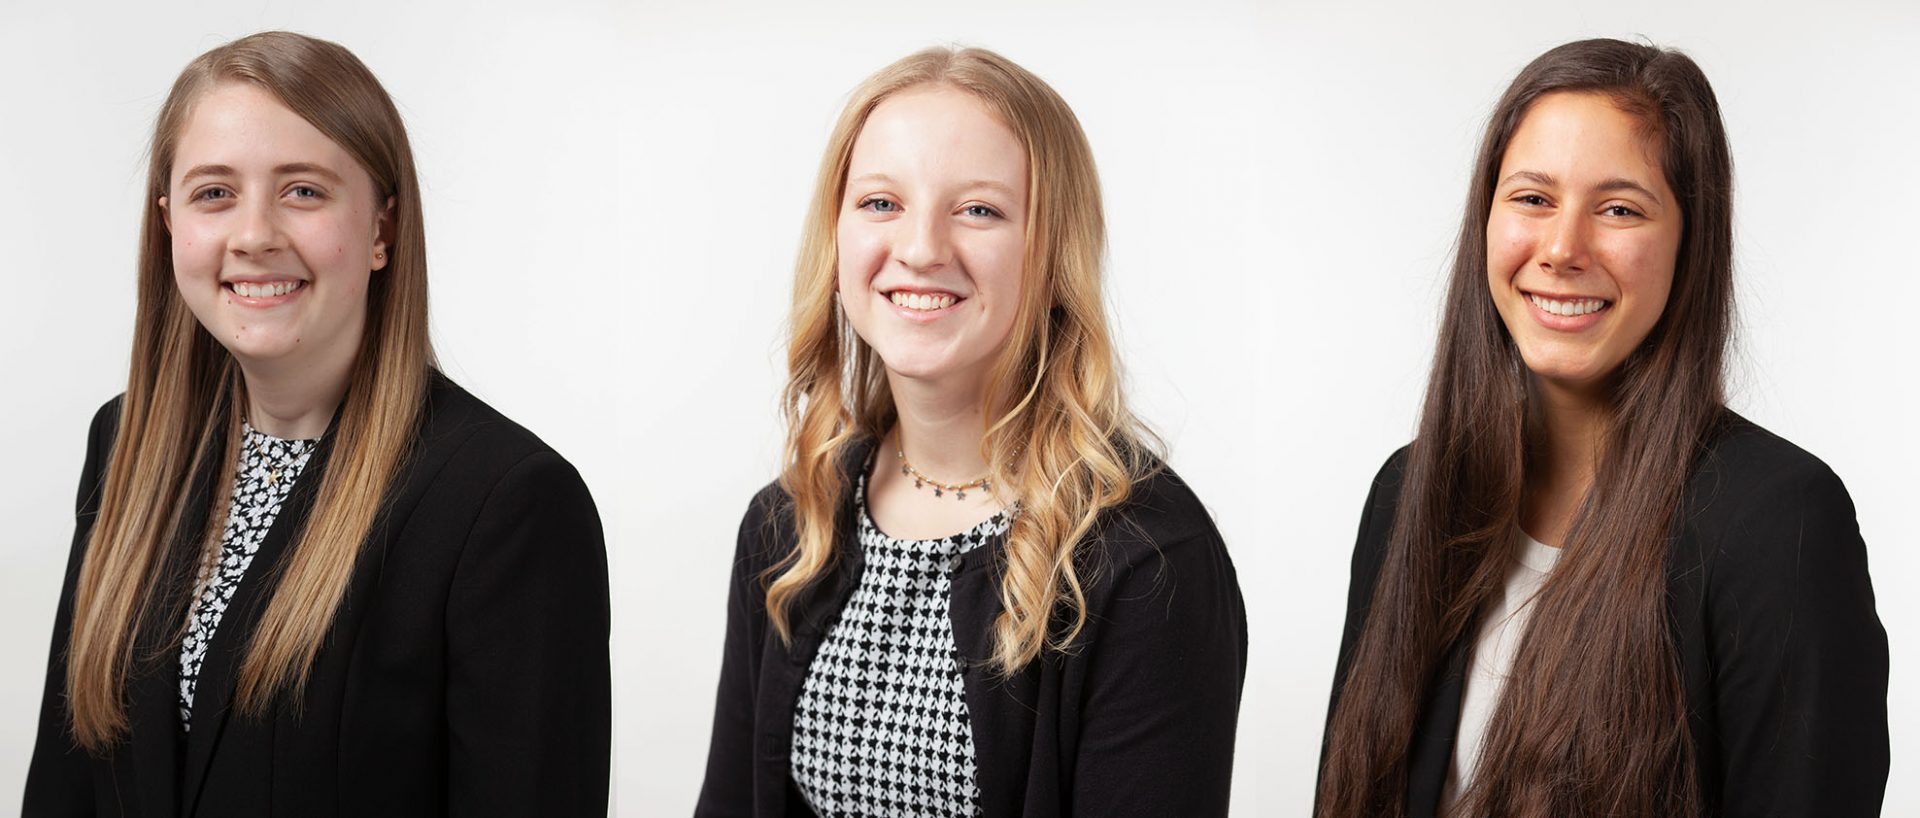 Headshots of Andrea Cornel, Katy Waddell, and Molly Dorgan from the Class of 2024